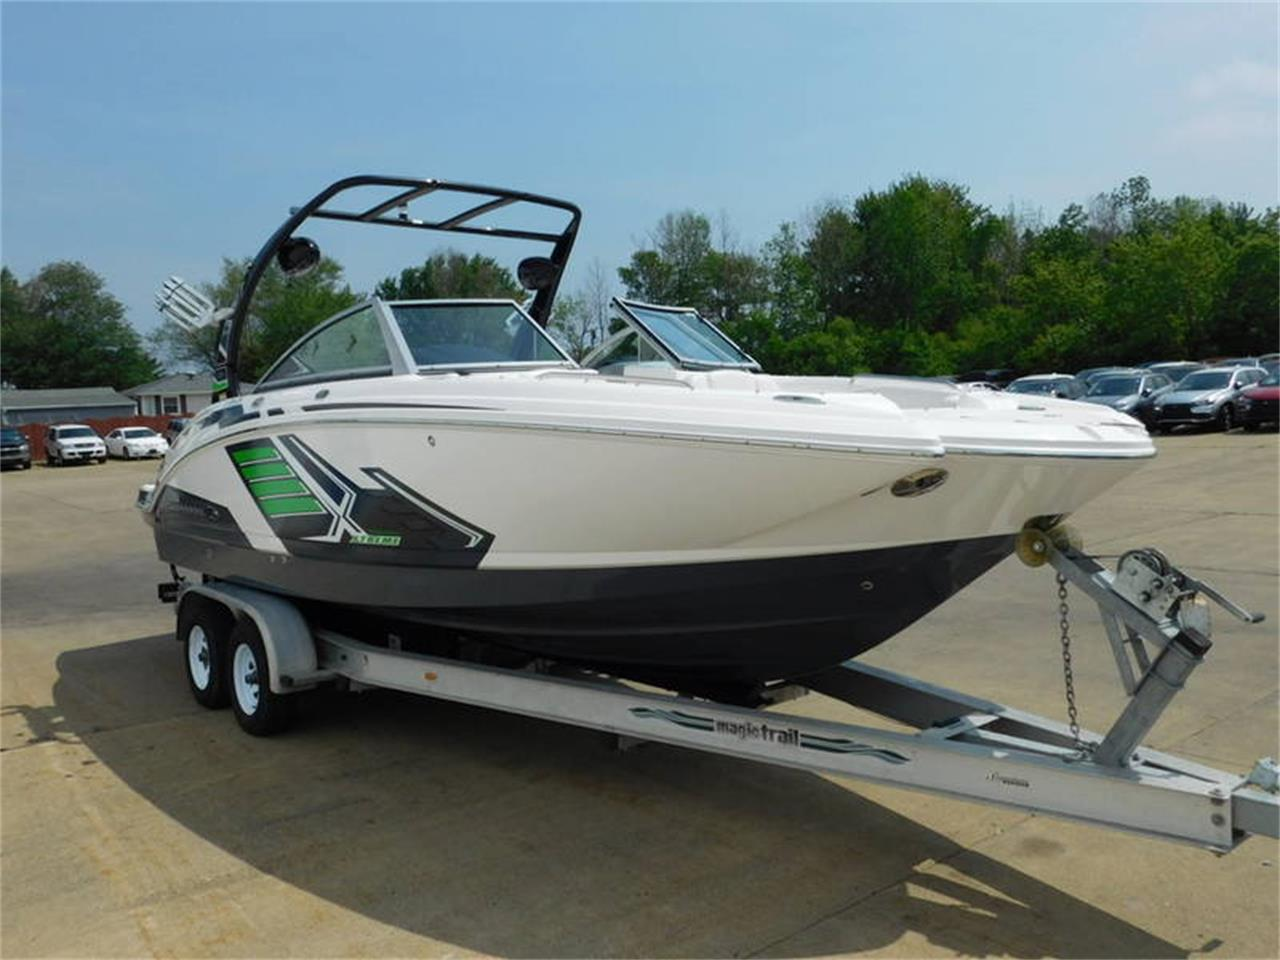 Large Picture of 2014 Miscellaneous Boat - $59,999.00 Offered by Superior Auto Sales - NV3P